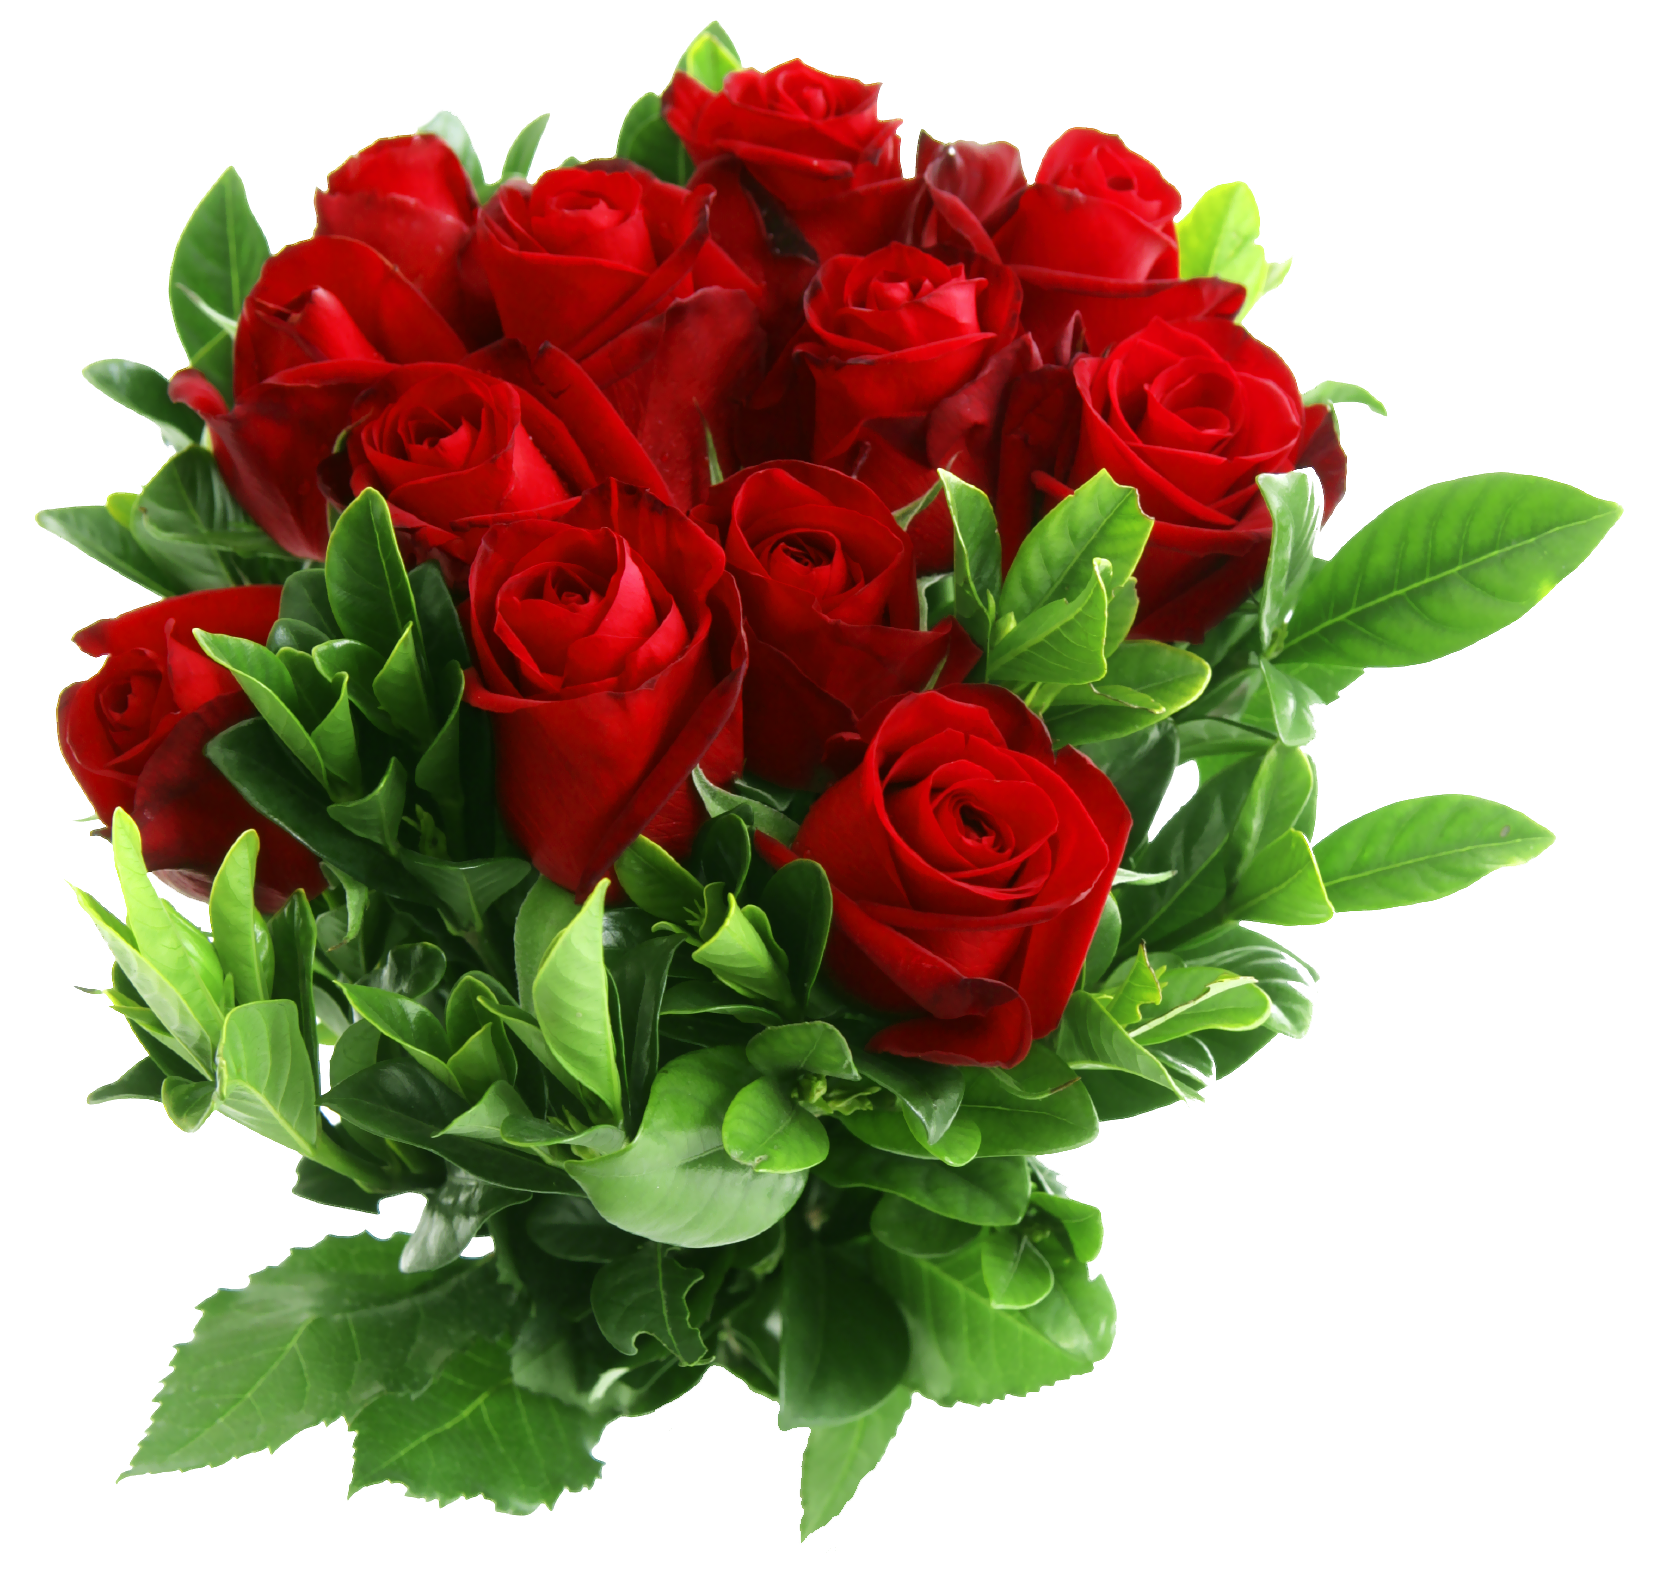 Bouquet of flowers png. Red rose picture gallery